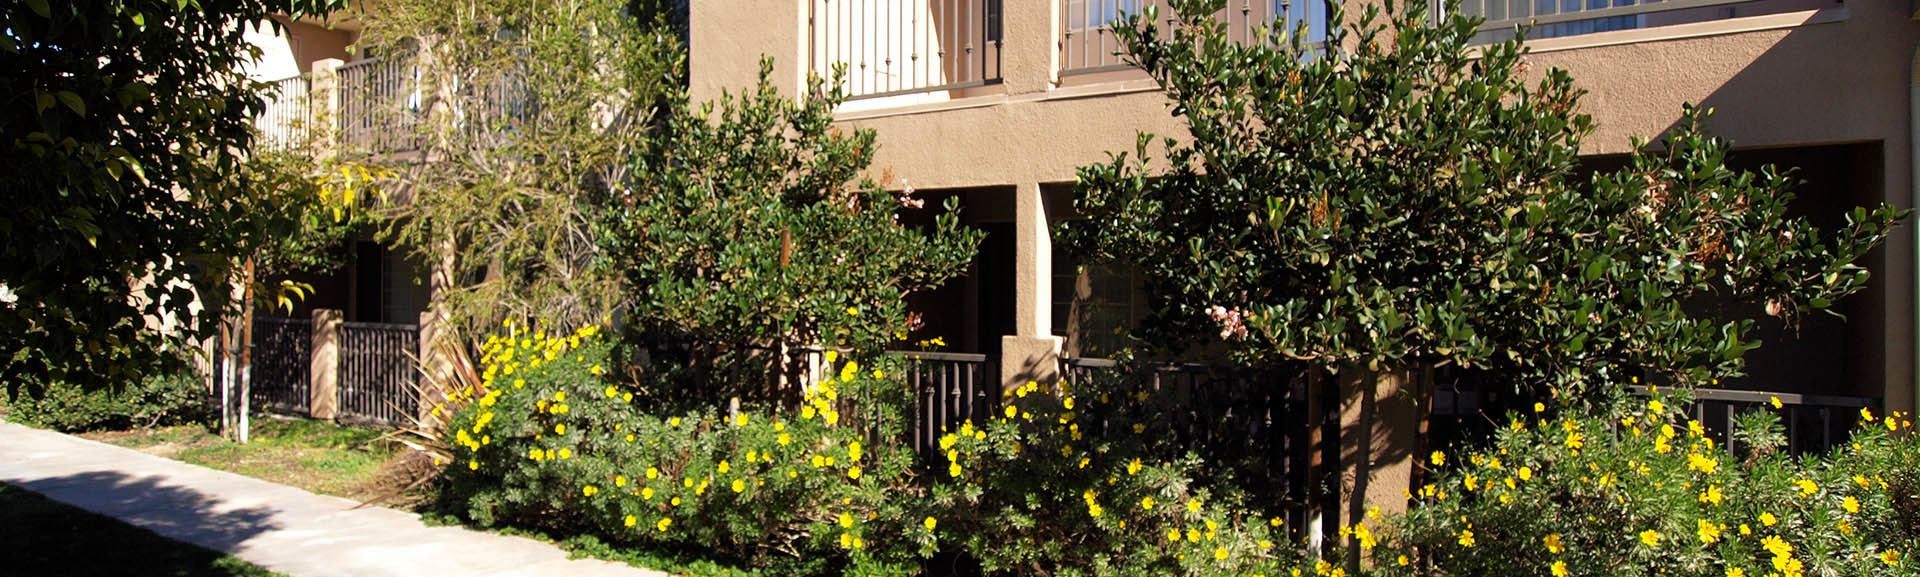 Learn about our neighborhood at Cypress Villas Apartment Homes in Redlands, CA on our website